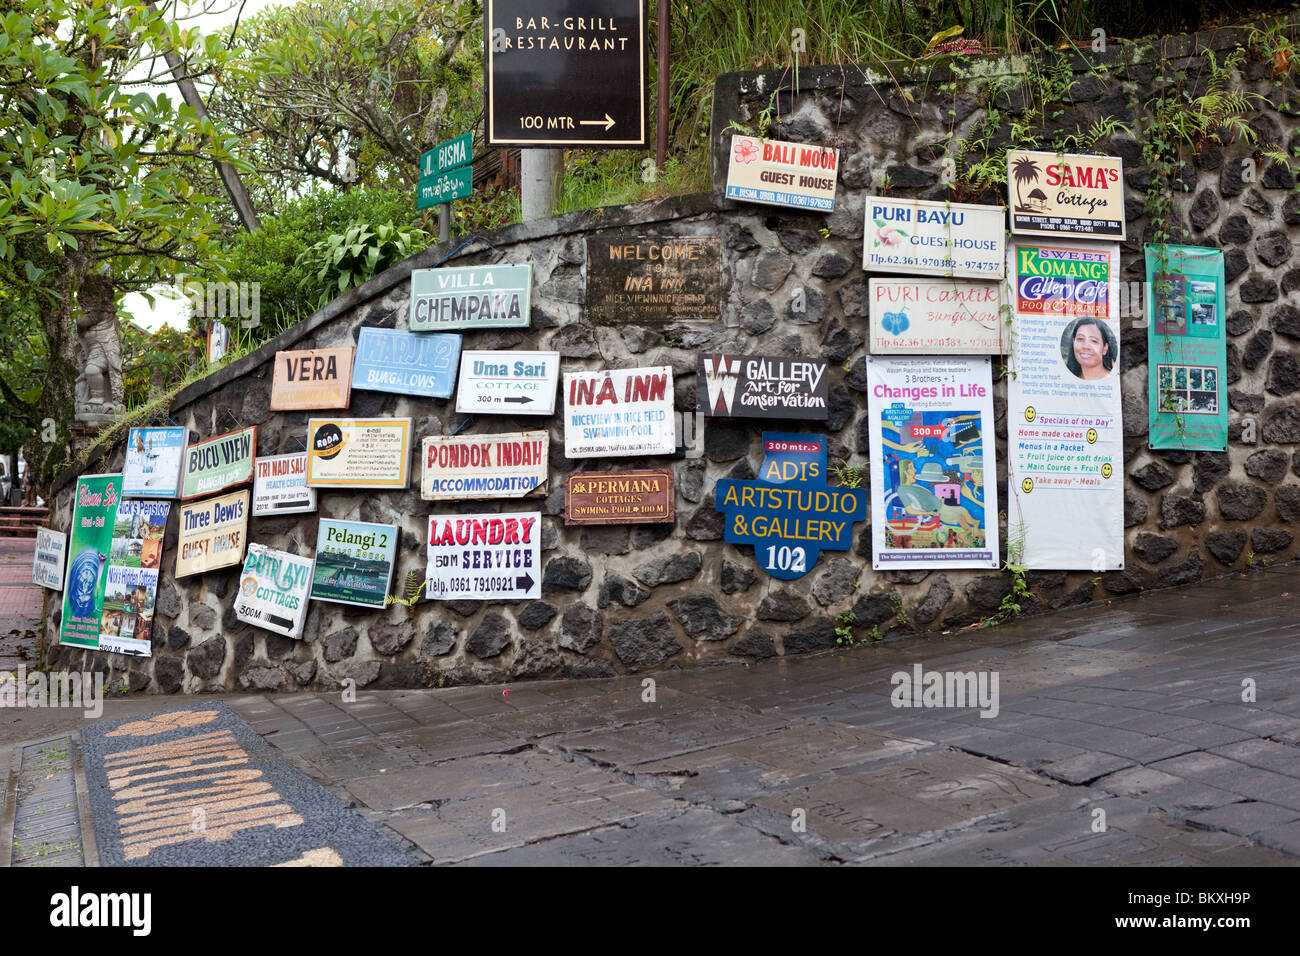 Signs in Ubud, Bali, Indonesia - Stock Image